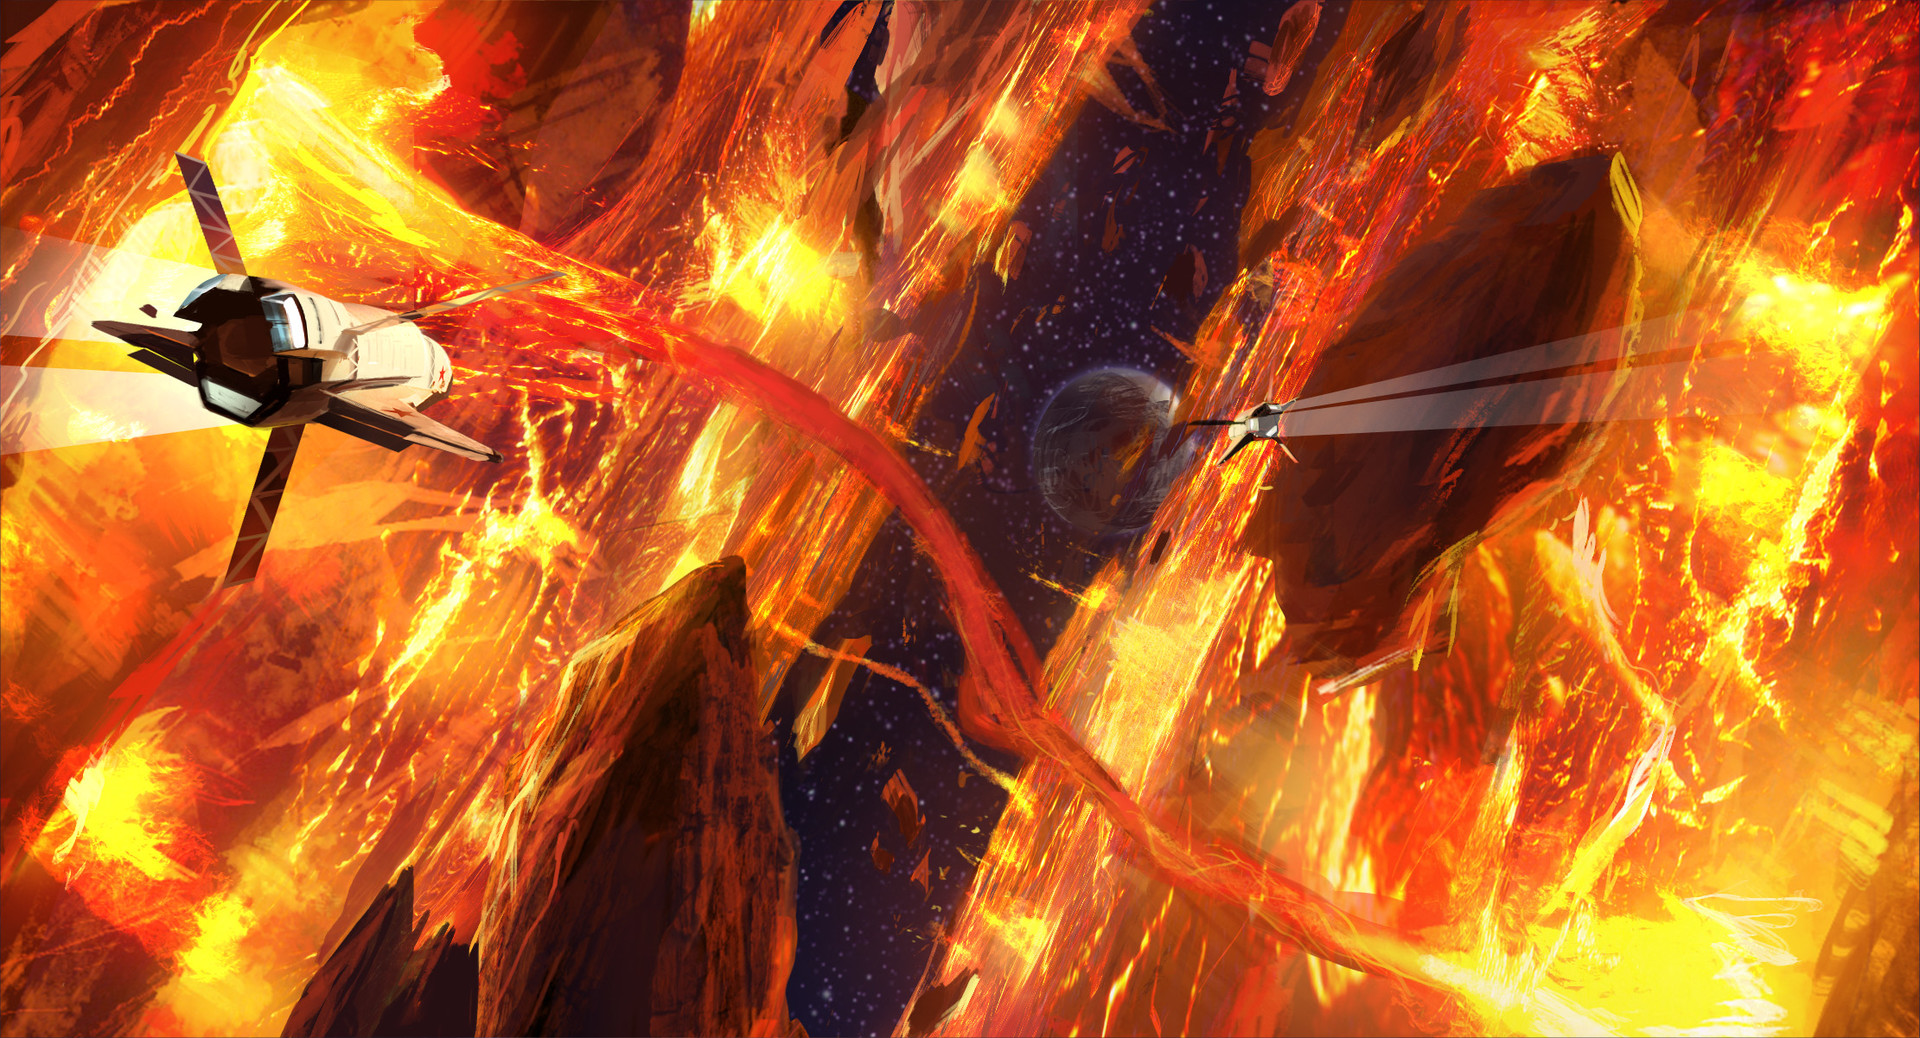 As the planet splits asunder, we fly between the monoliths of shattered molten core as titanic forces are unleashed—